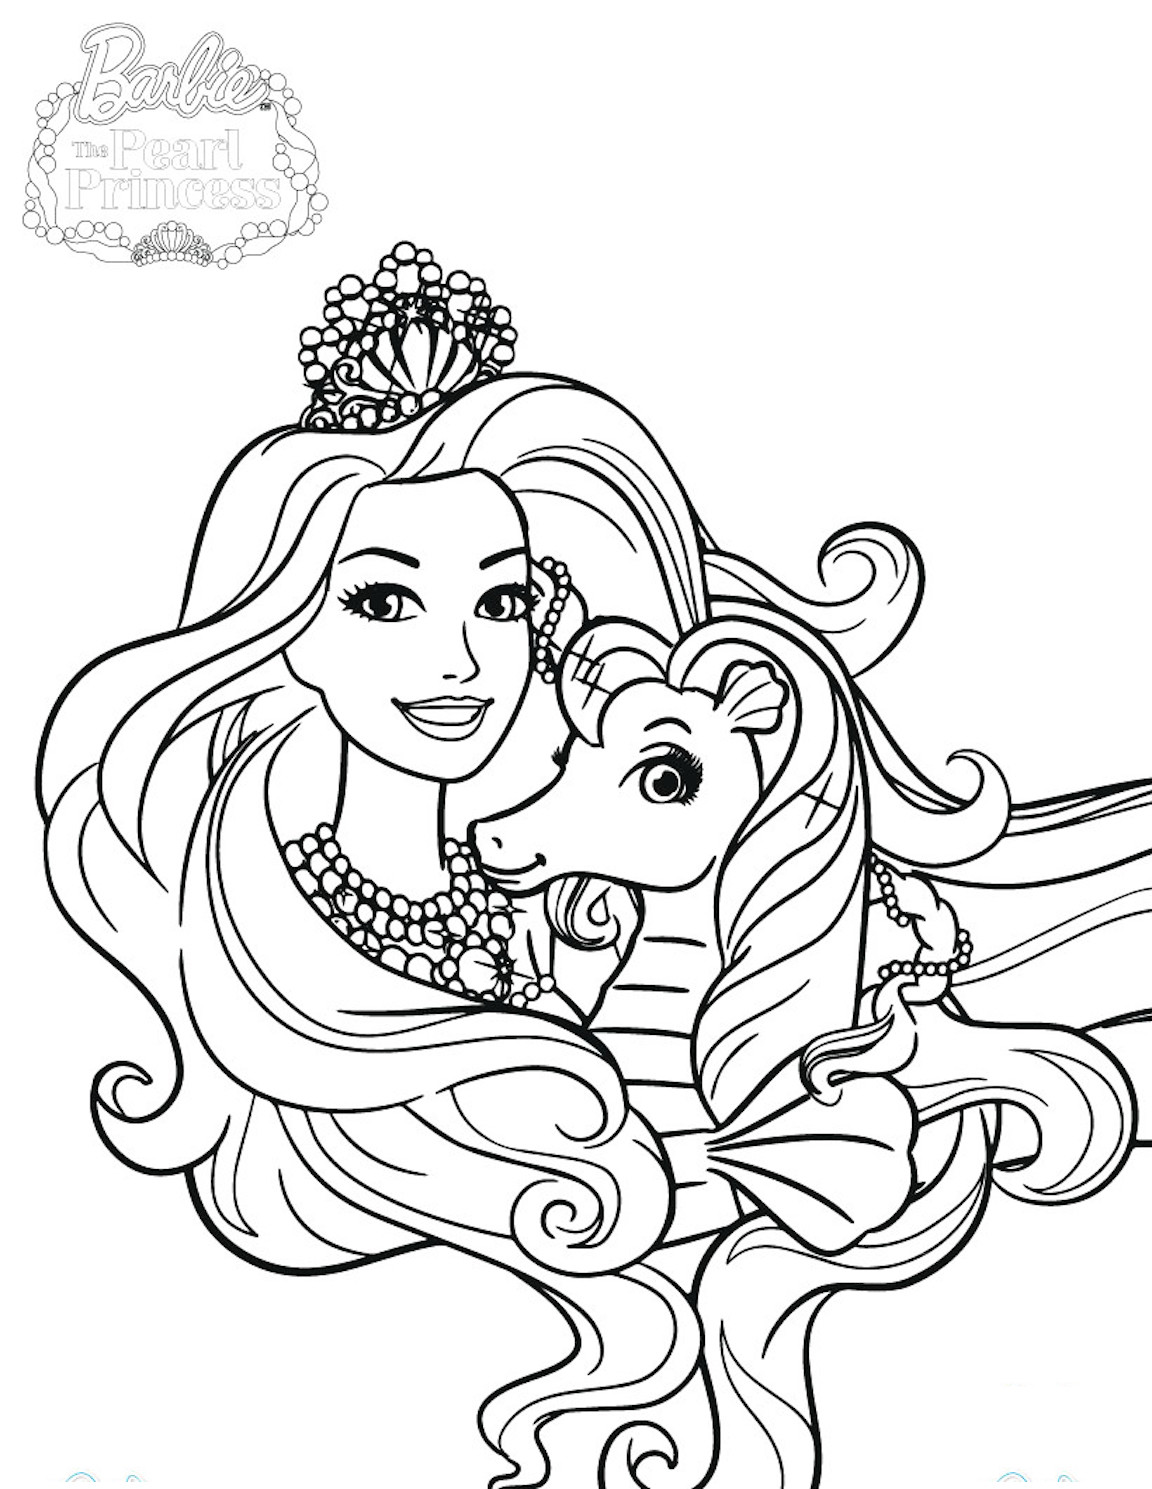 barbie pictures to colour and print barbie coloring pages learn to coloring barbie colour and pictures to print